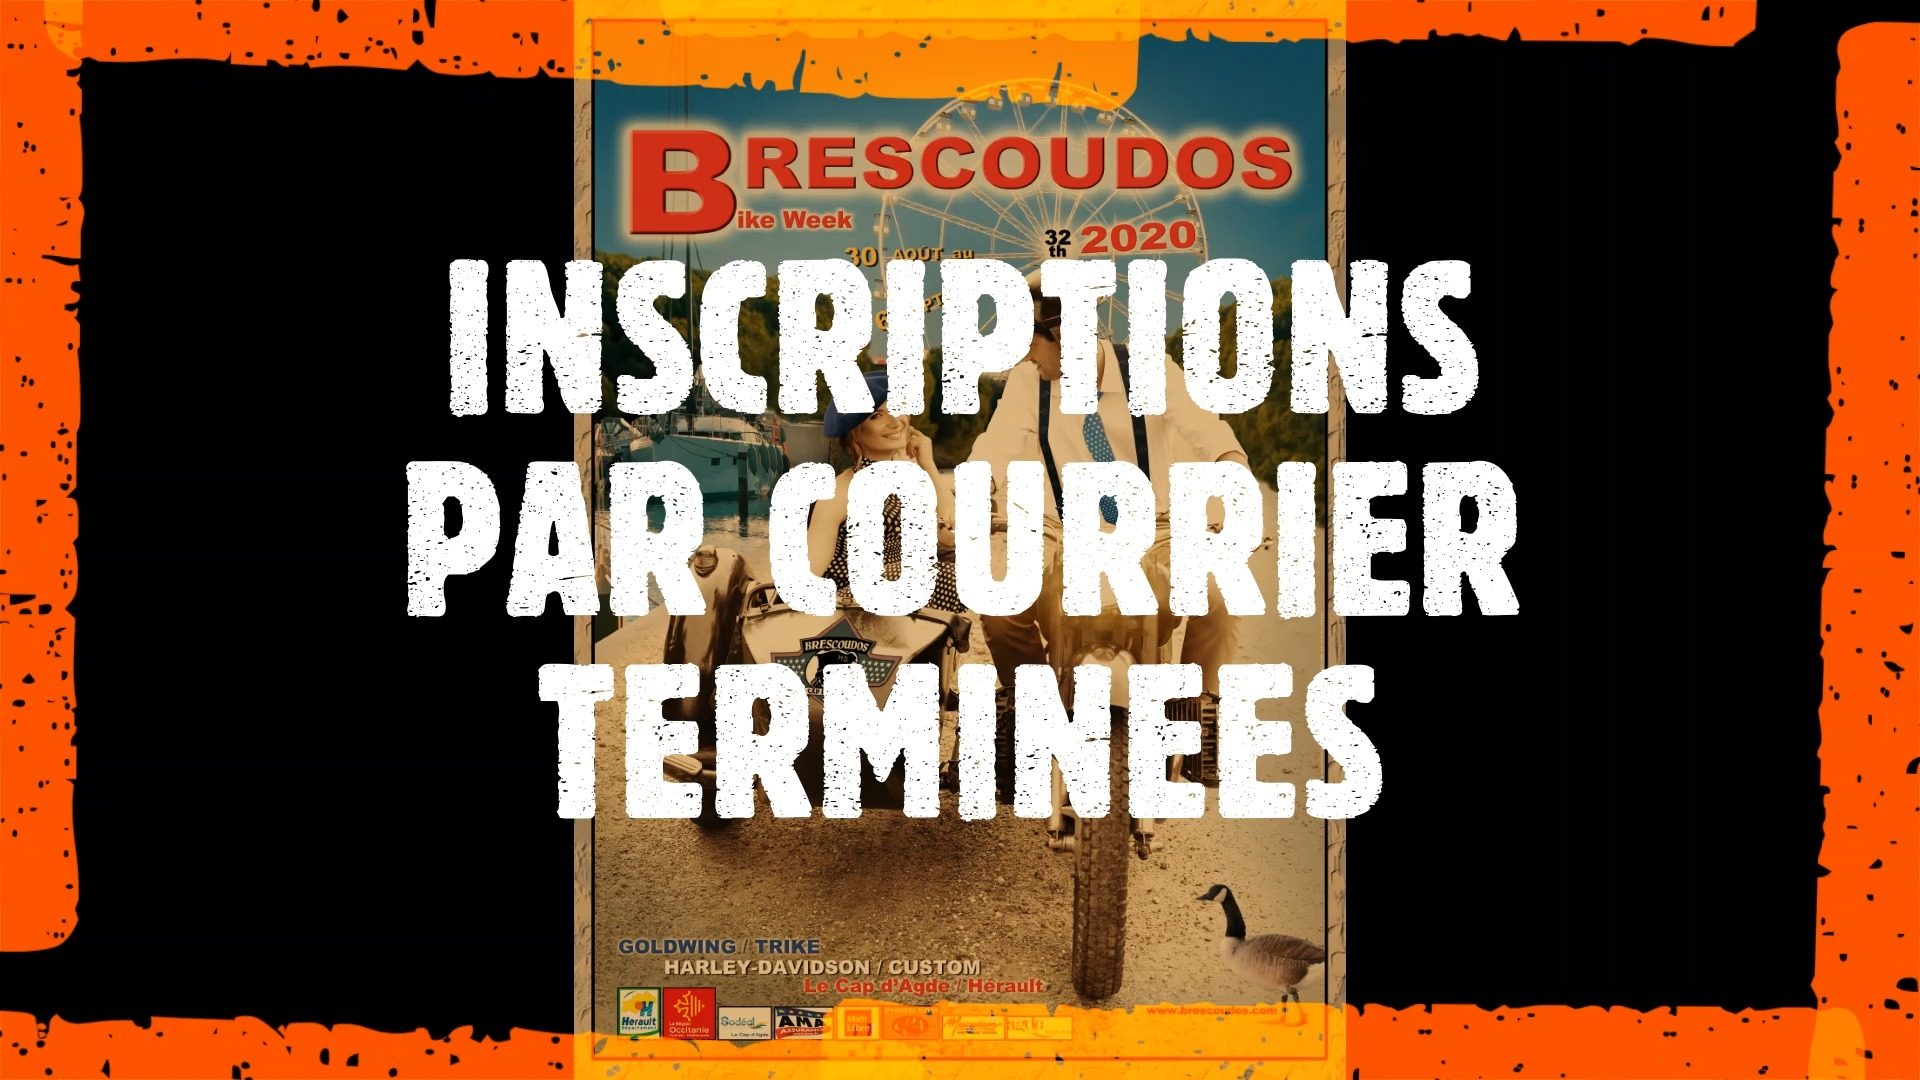 INSCRIPTIONS PAR COURRIER TERMINÉES